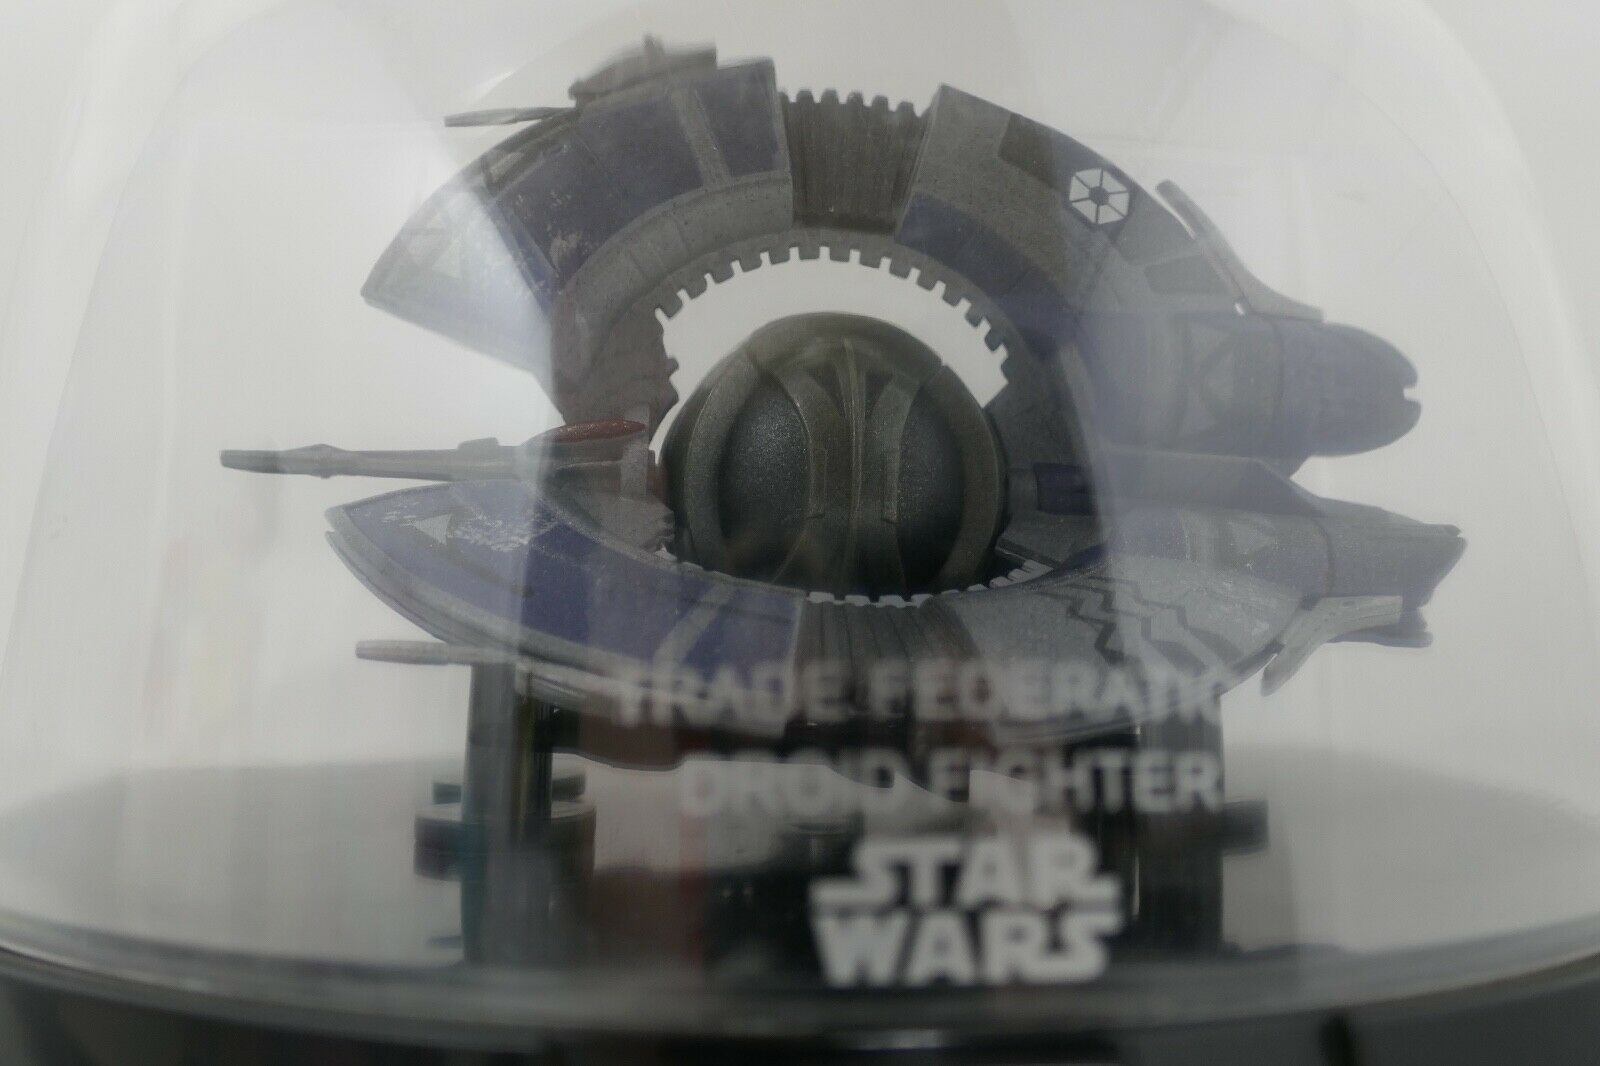 Hasbro Star Wars Trade Federation Droid Fighter Titanium Large Die Cast Vehicle